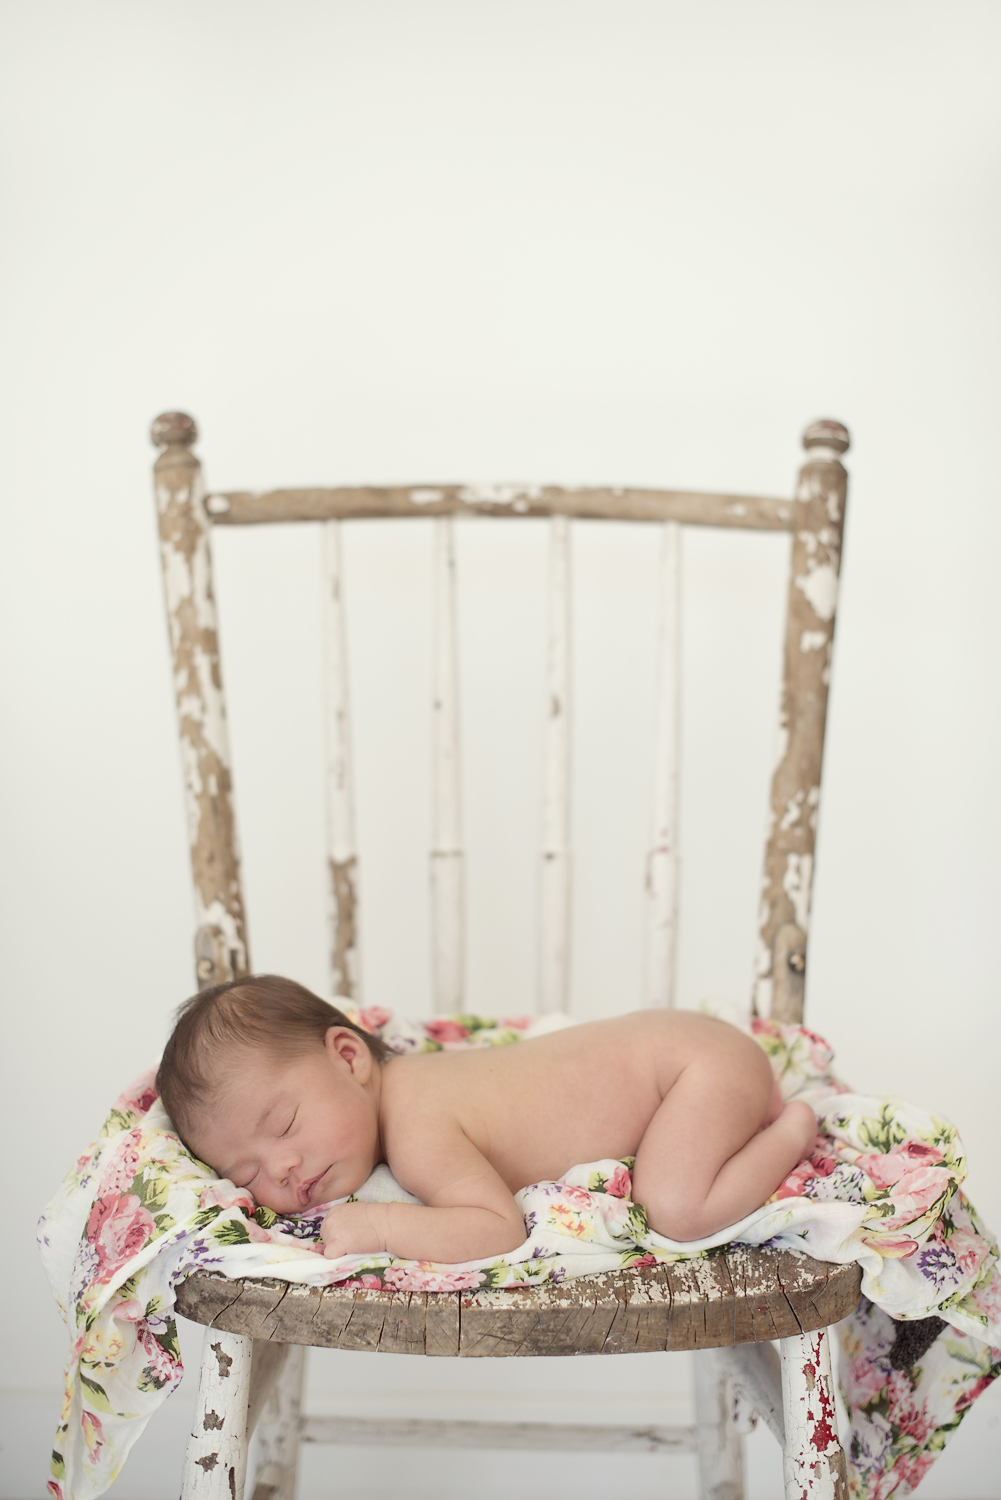 Berwick Portrait Photography, Berwick Portrait Photographer, Melbourne Portrait Photography, Melbourne Portrait Photographer, Newborn Photography, Berwick Newborn Photographer, Newborns, Baby, Baby Photographer,